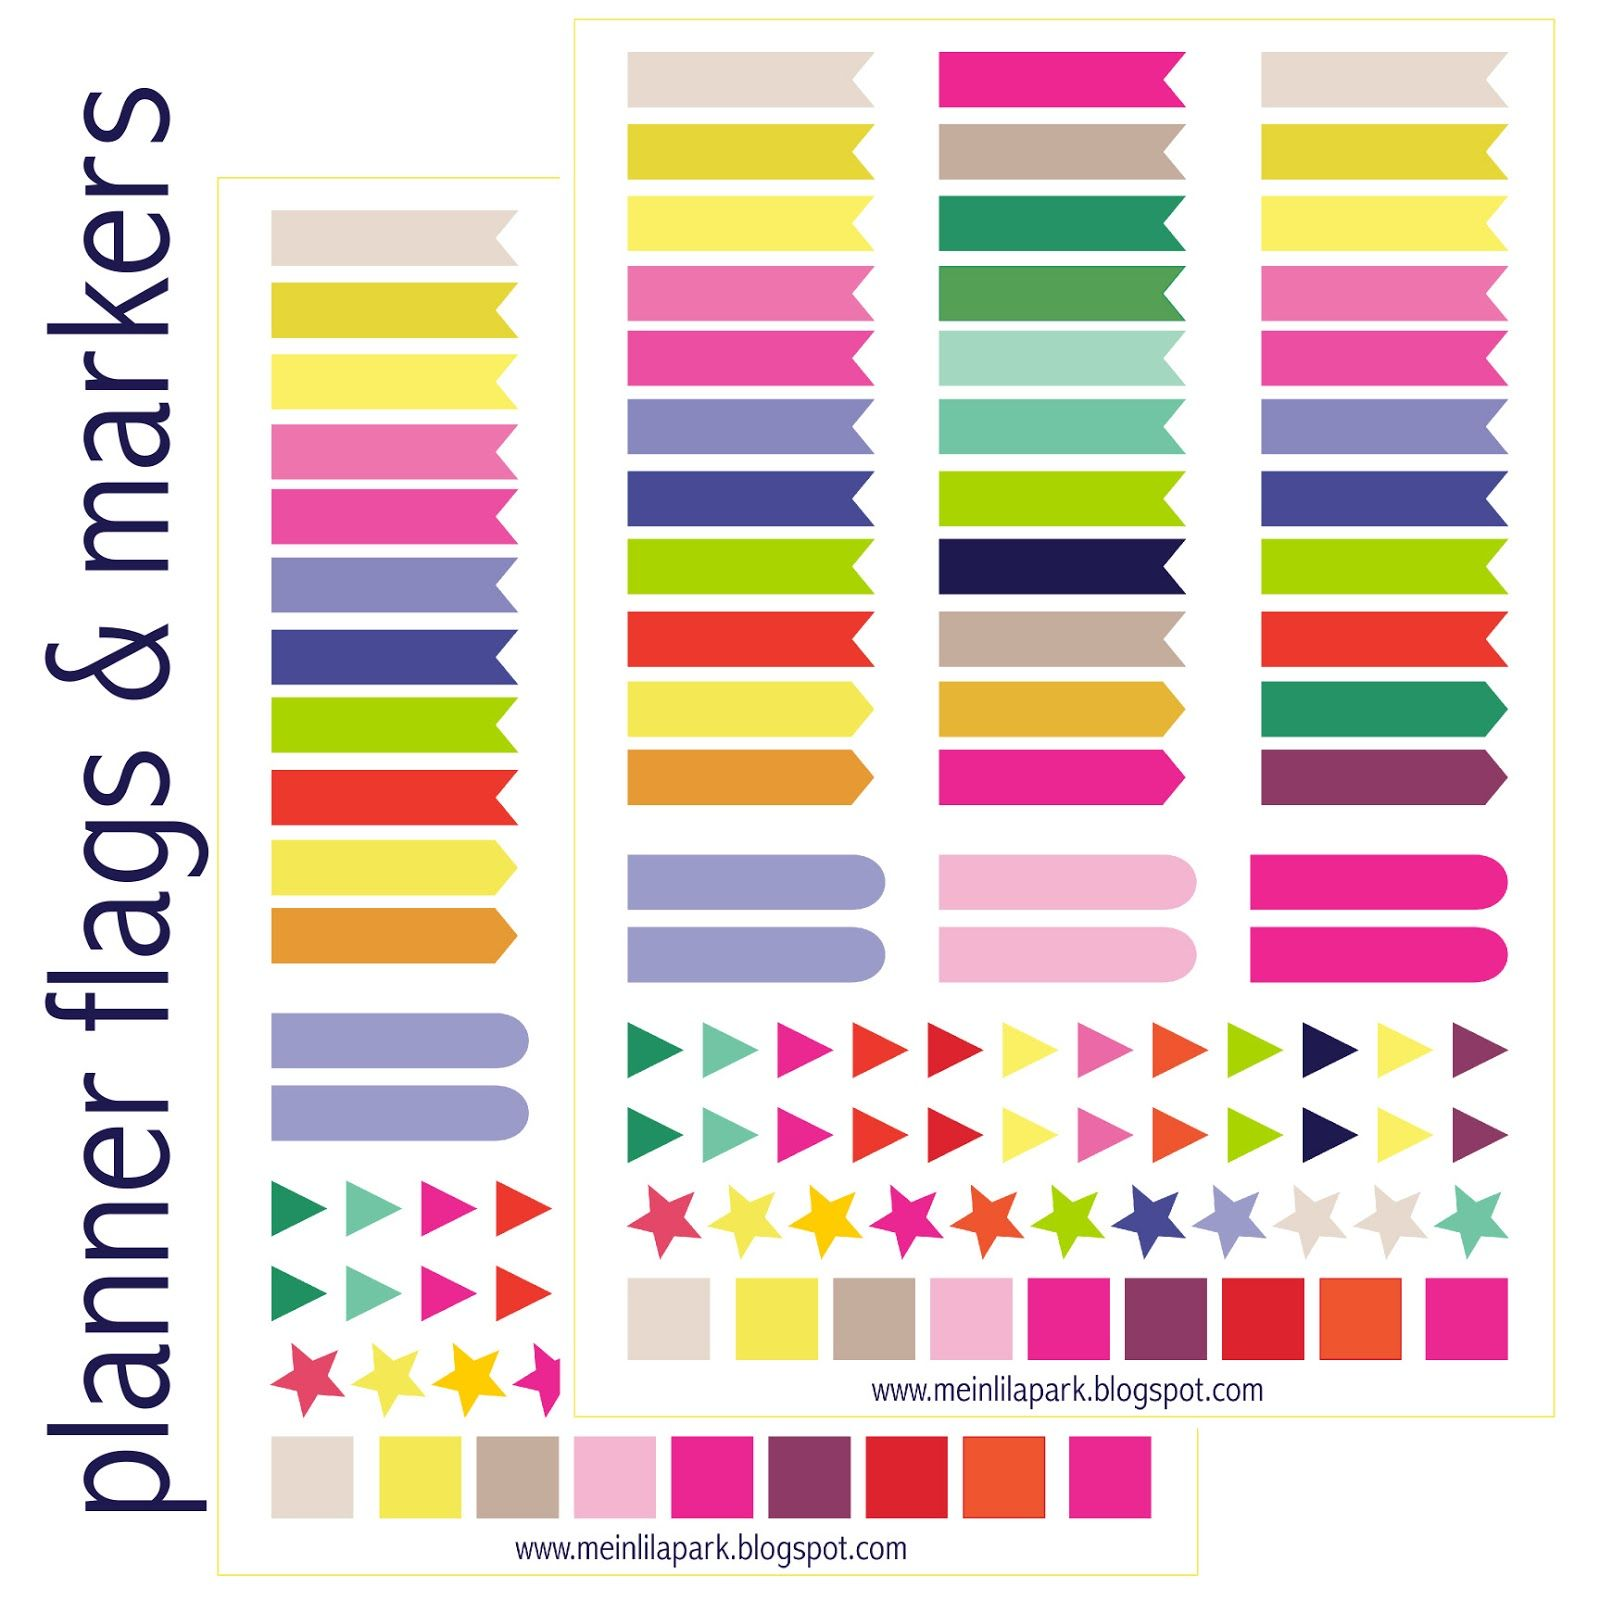 Free printable calendar planner flags and markers ausdruckbare